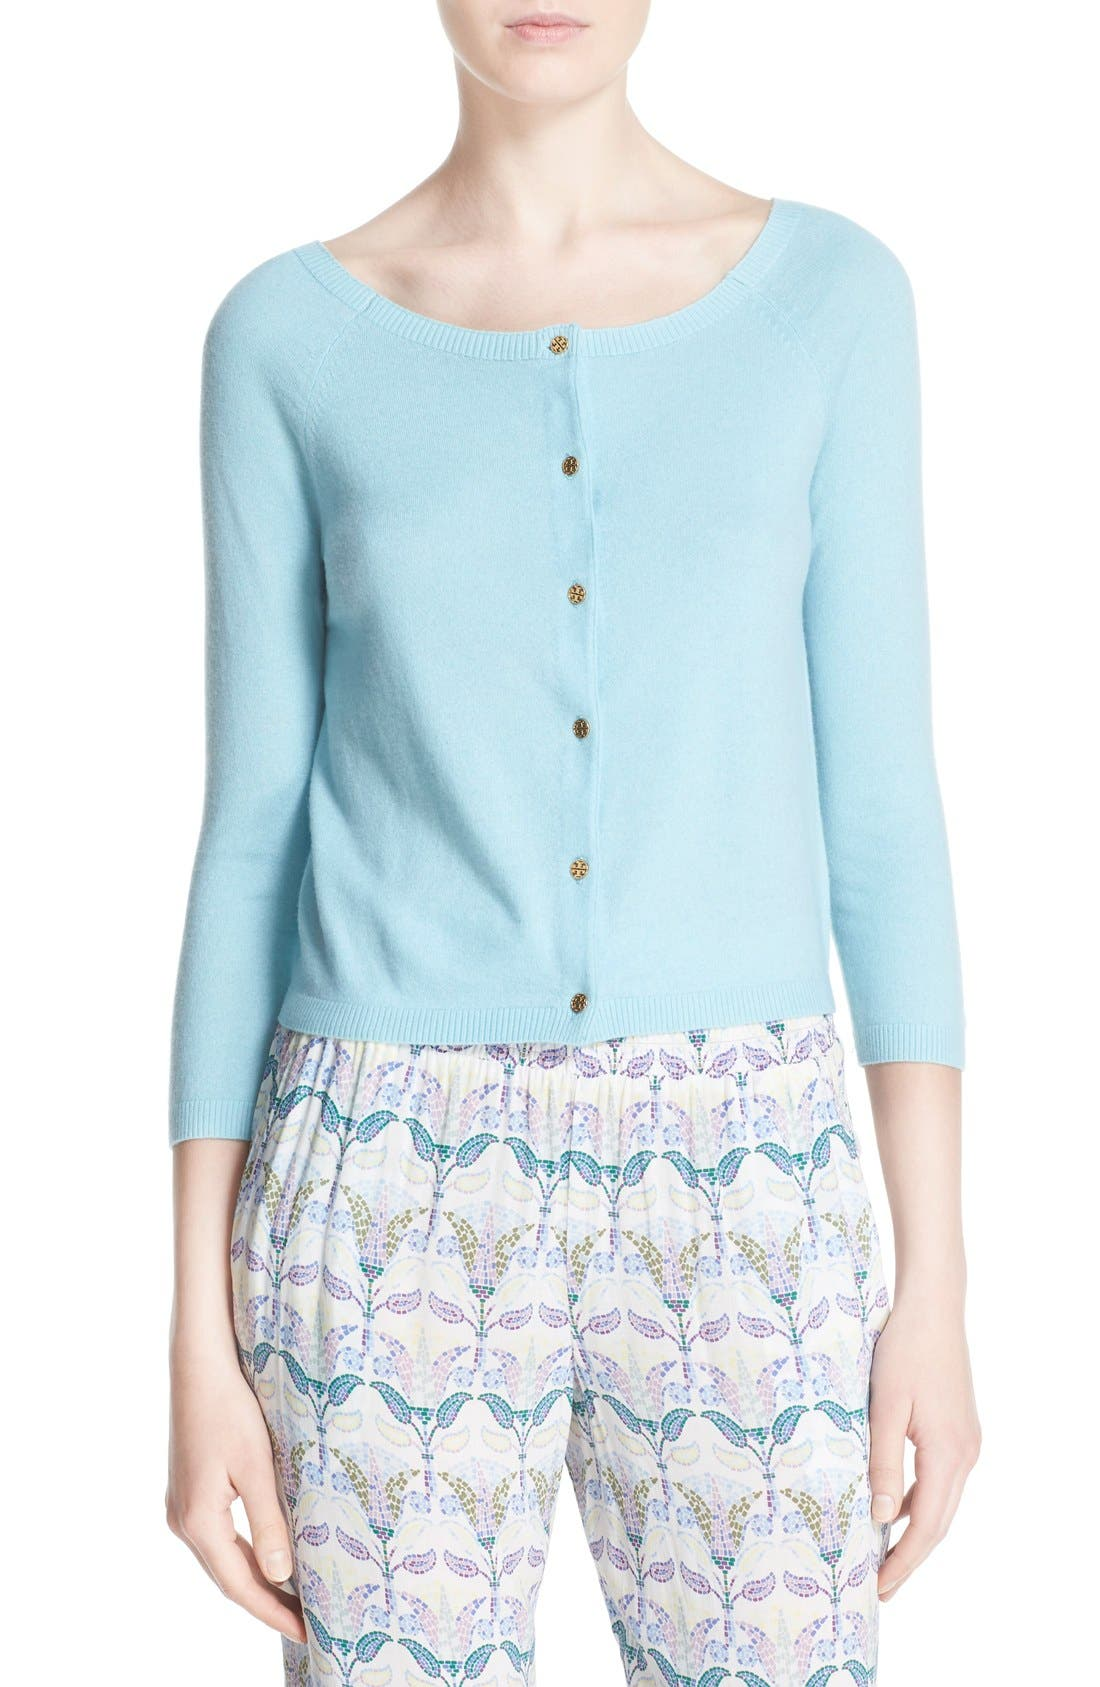 Main Image - Tory Burch 'Rosemary' Cashmere Cardigan